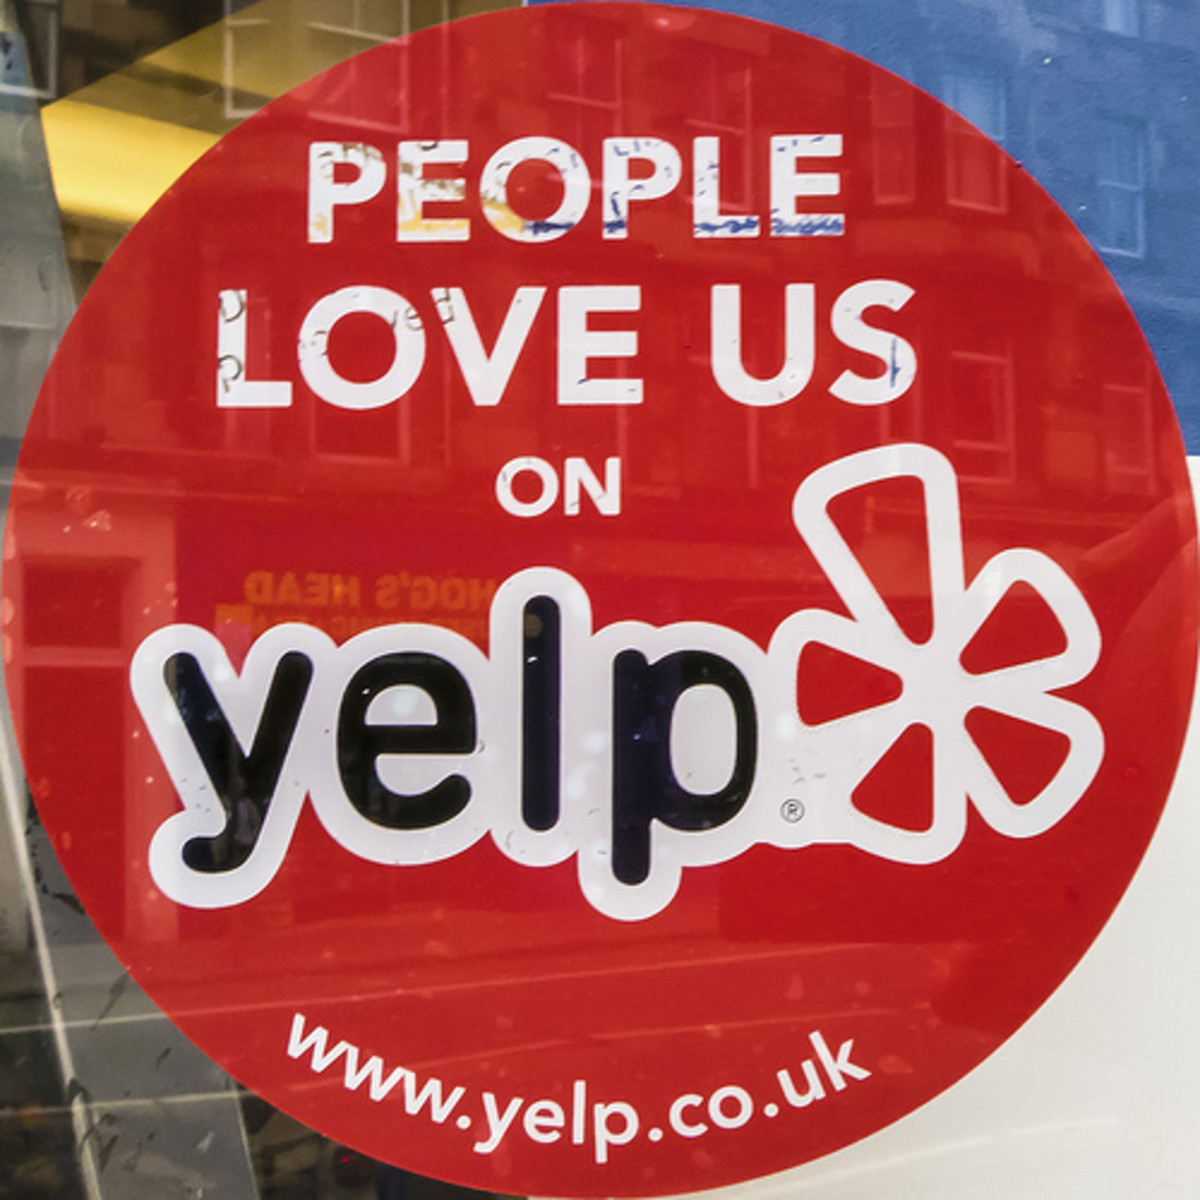 Almost a quarter of Yelp reviews can be fake.